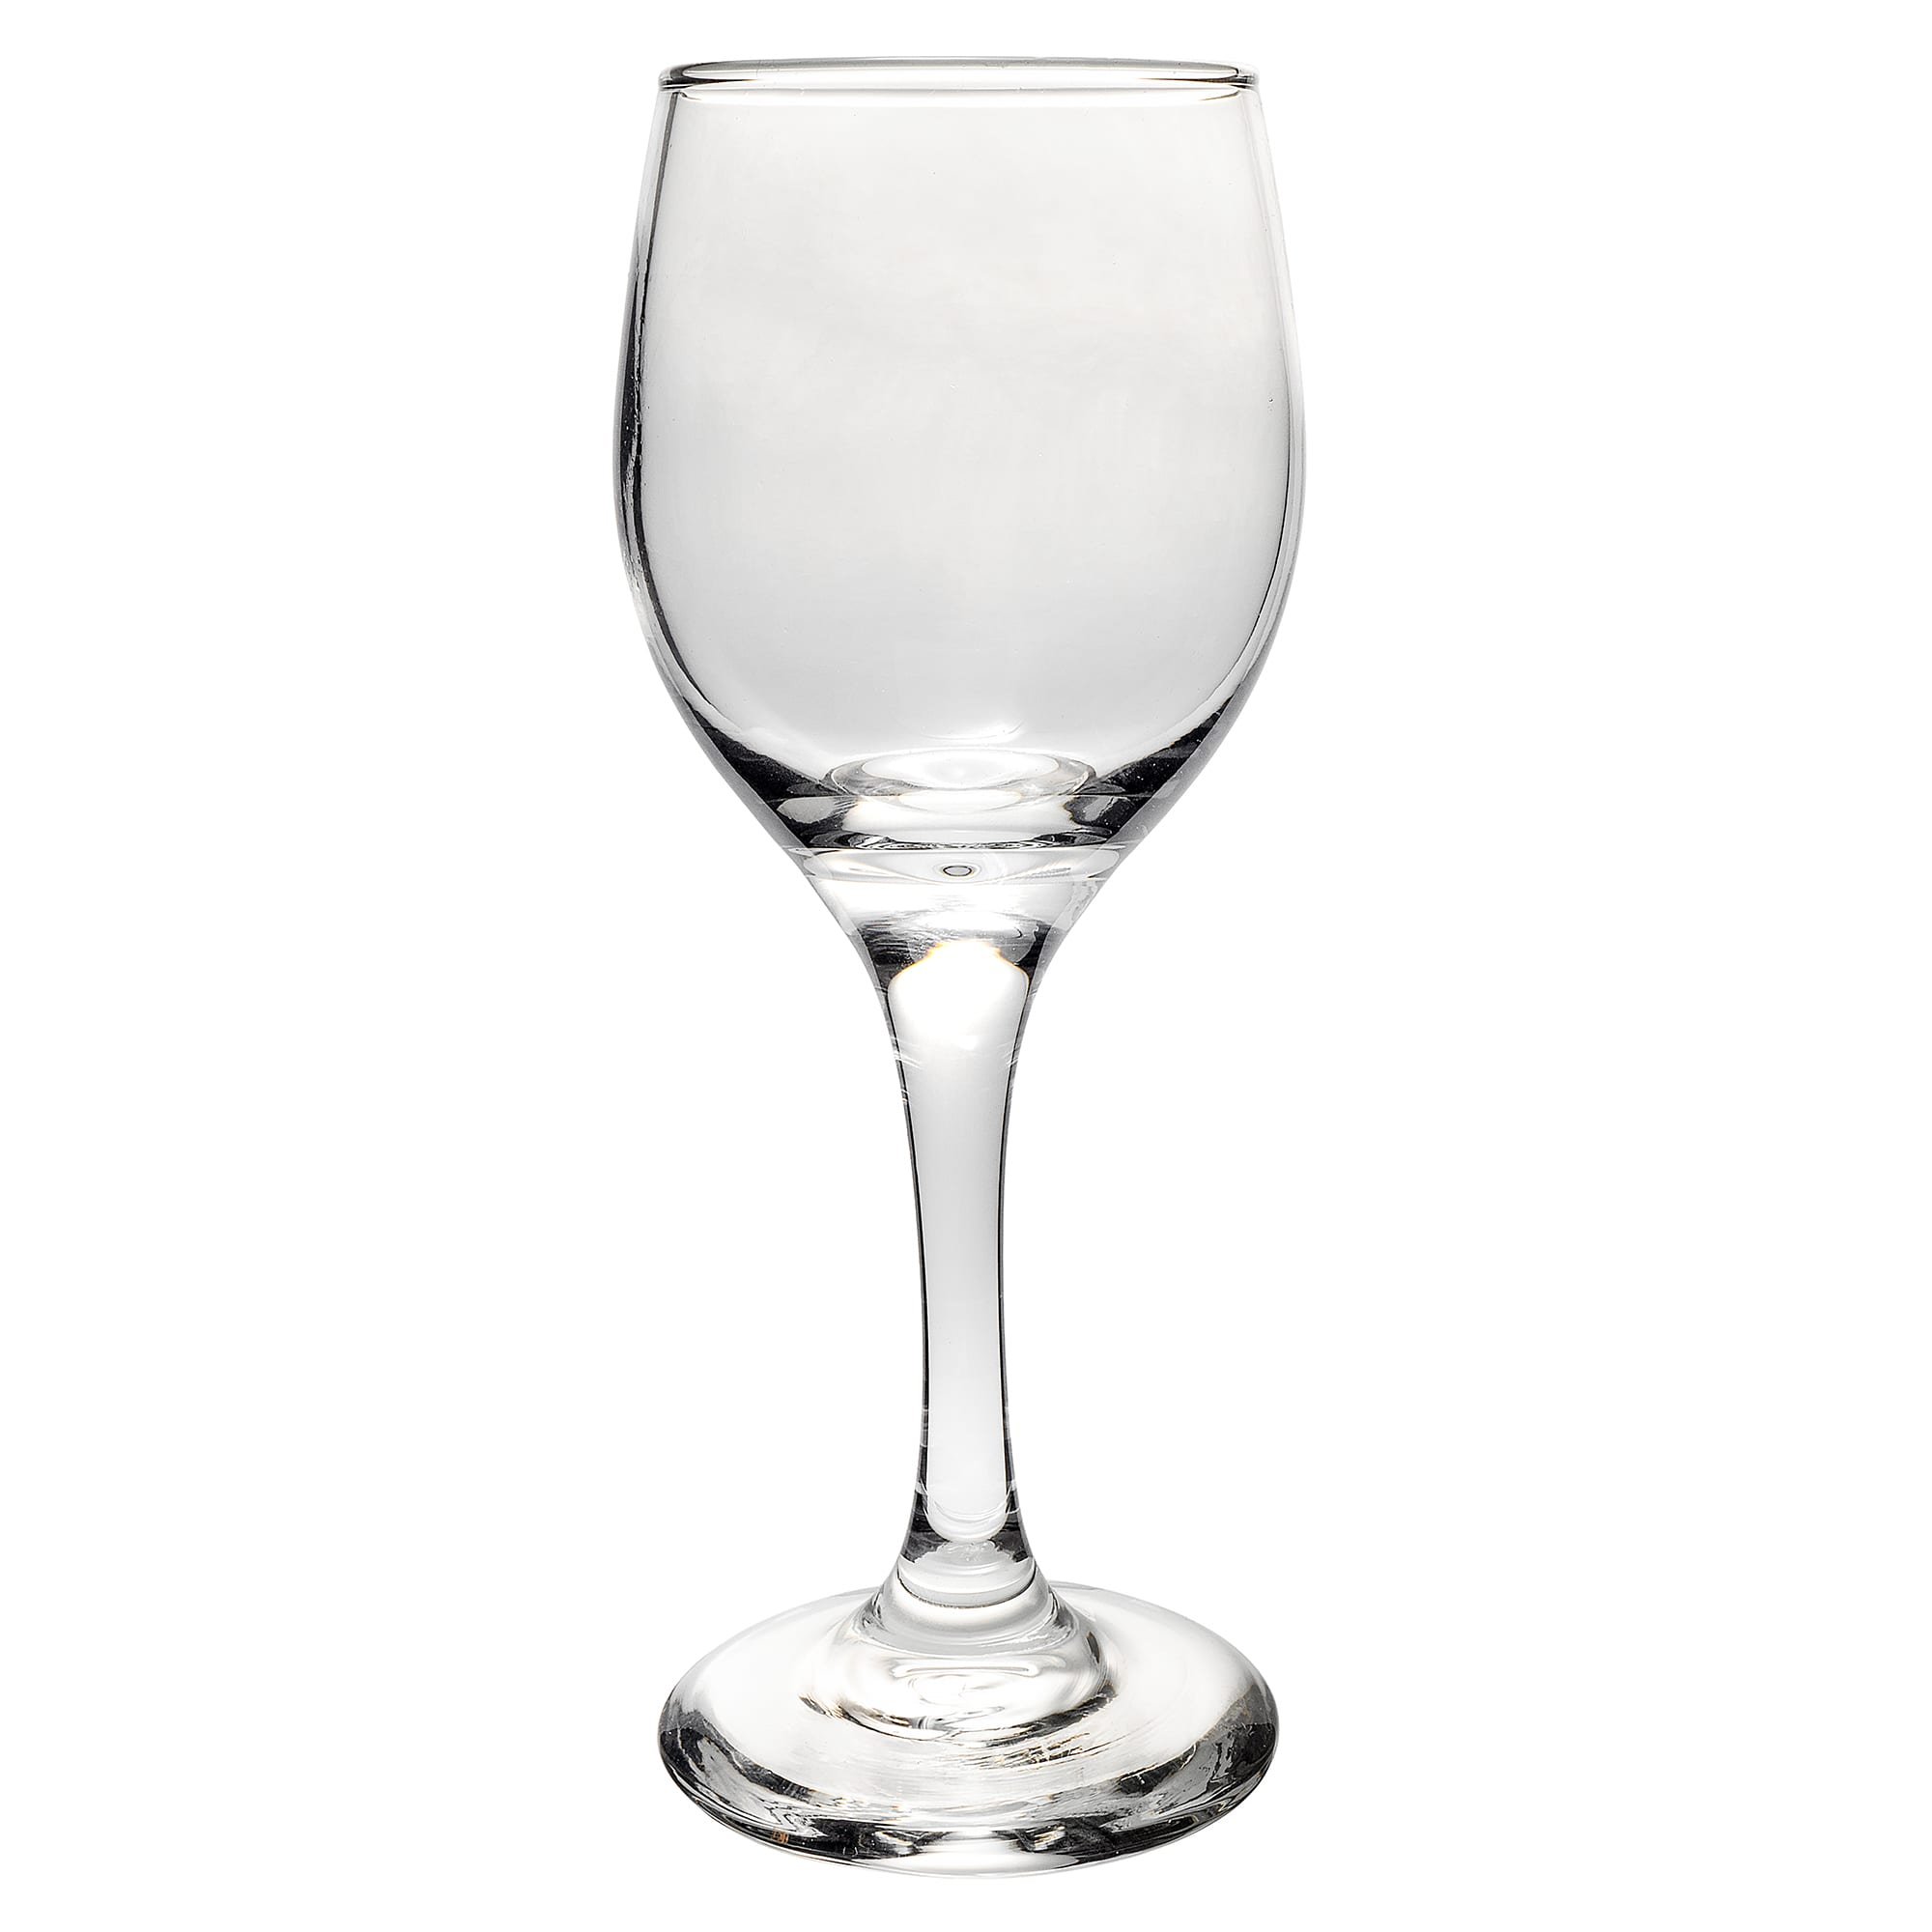 Libbey 3088 4.12 oz Perception Cordial Glass Mini-Dessert